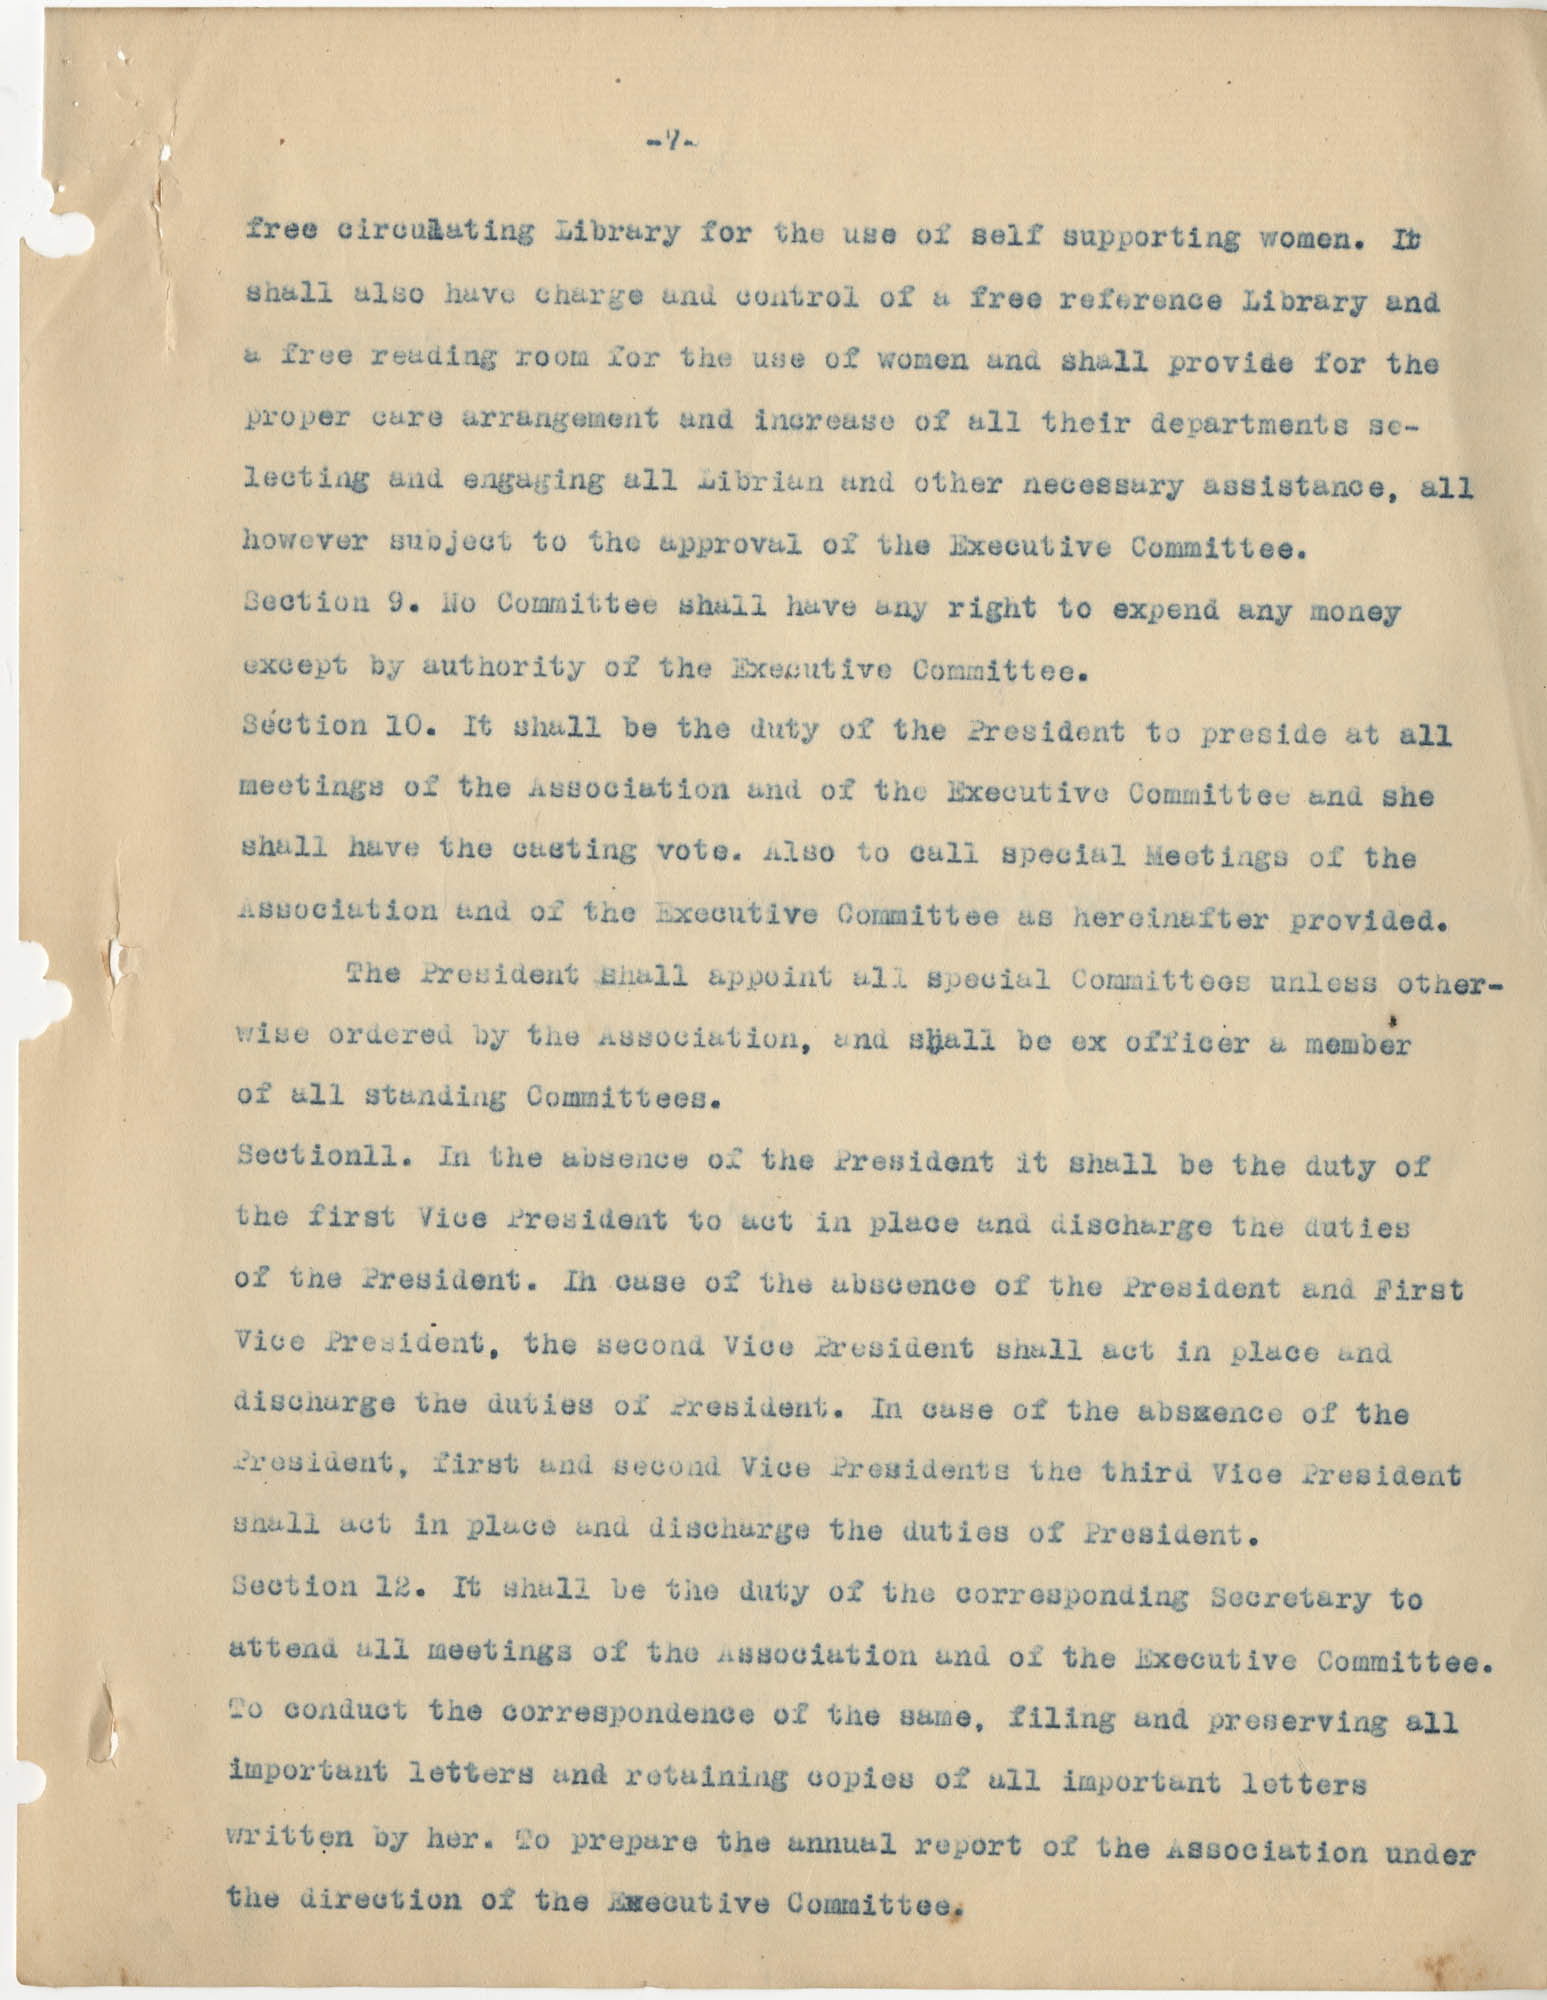 Minutes to the Coming Street Y.W.C.A. Meeting, January 23, 1911, Page 7